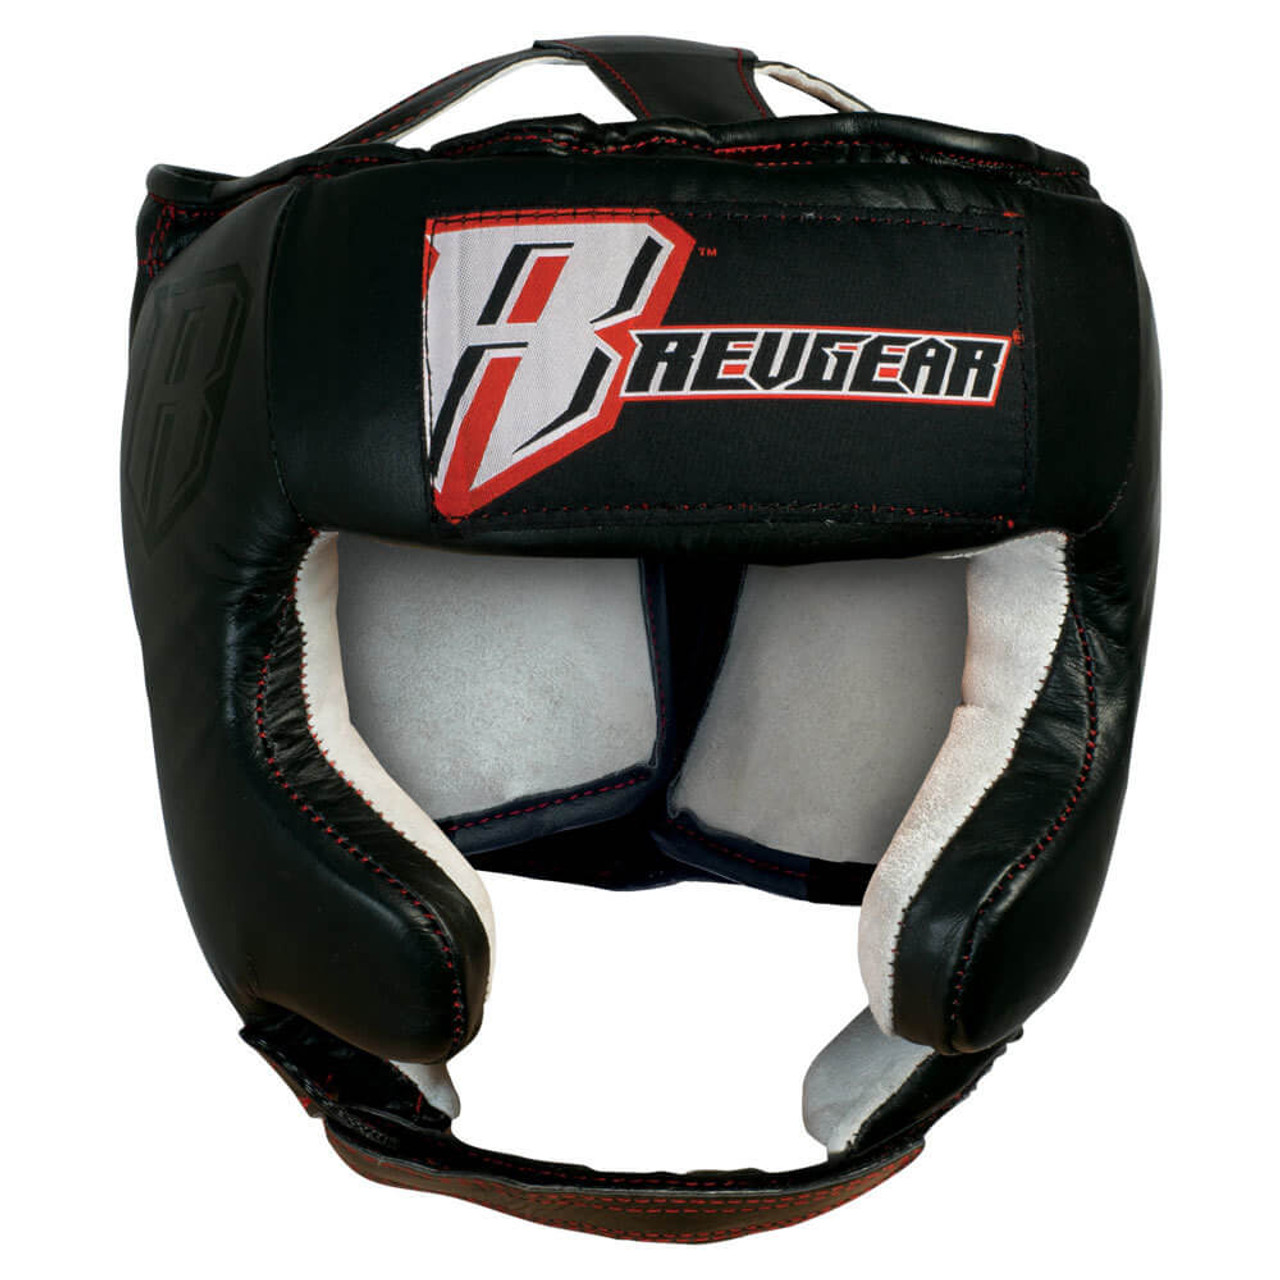 Leather Headgear With Cheek Protection - No Chin